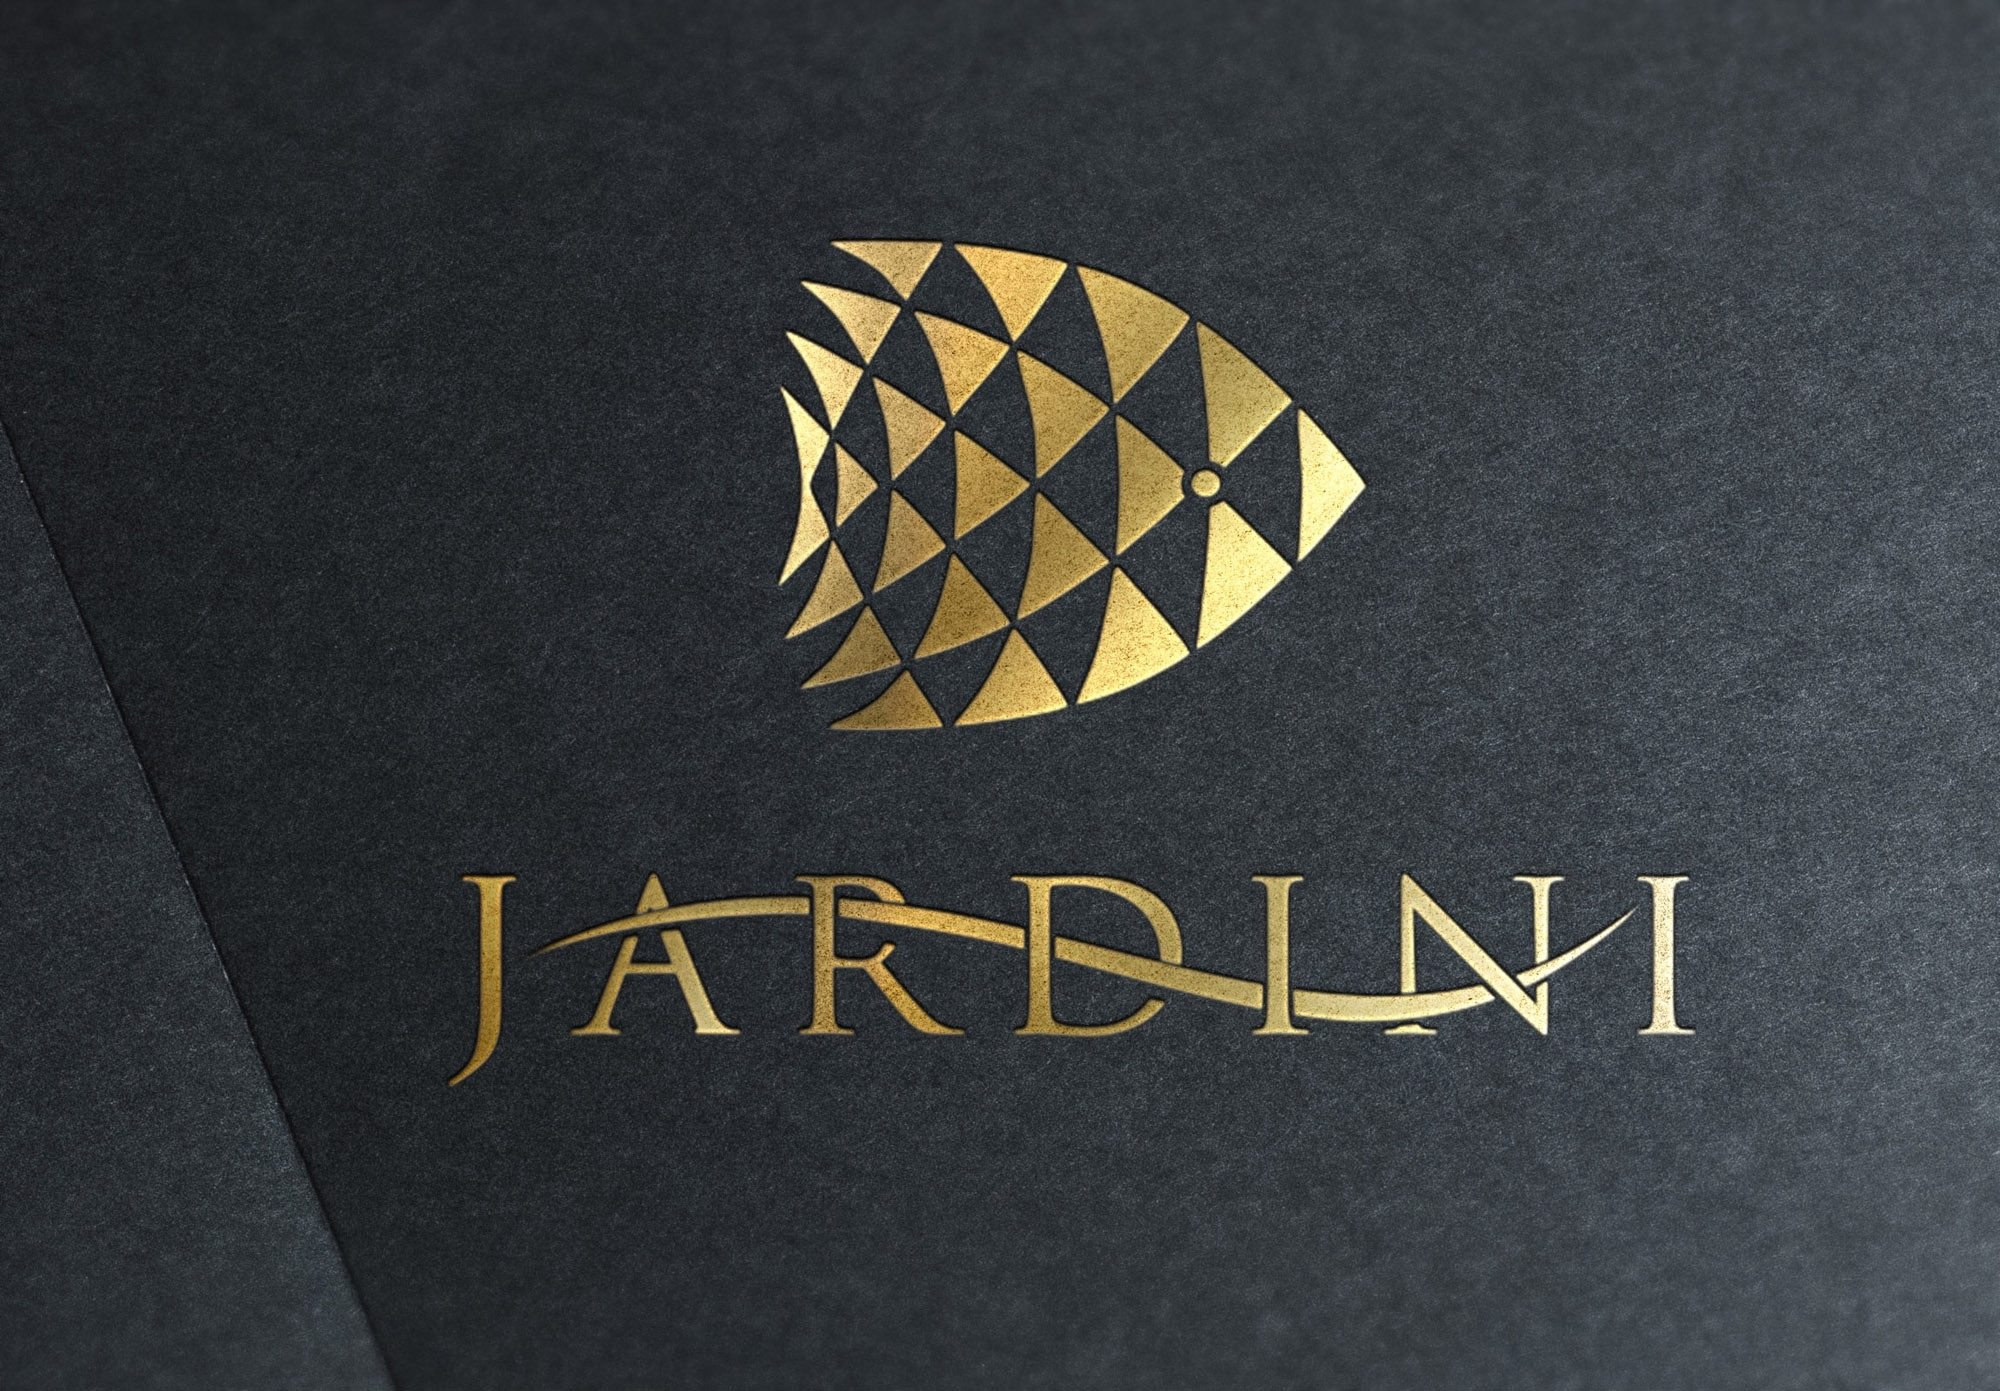 jardini international- company logo